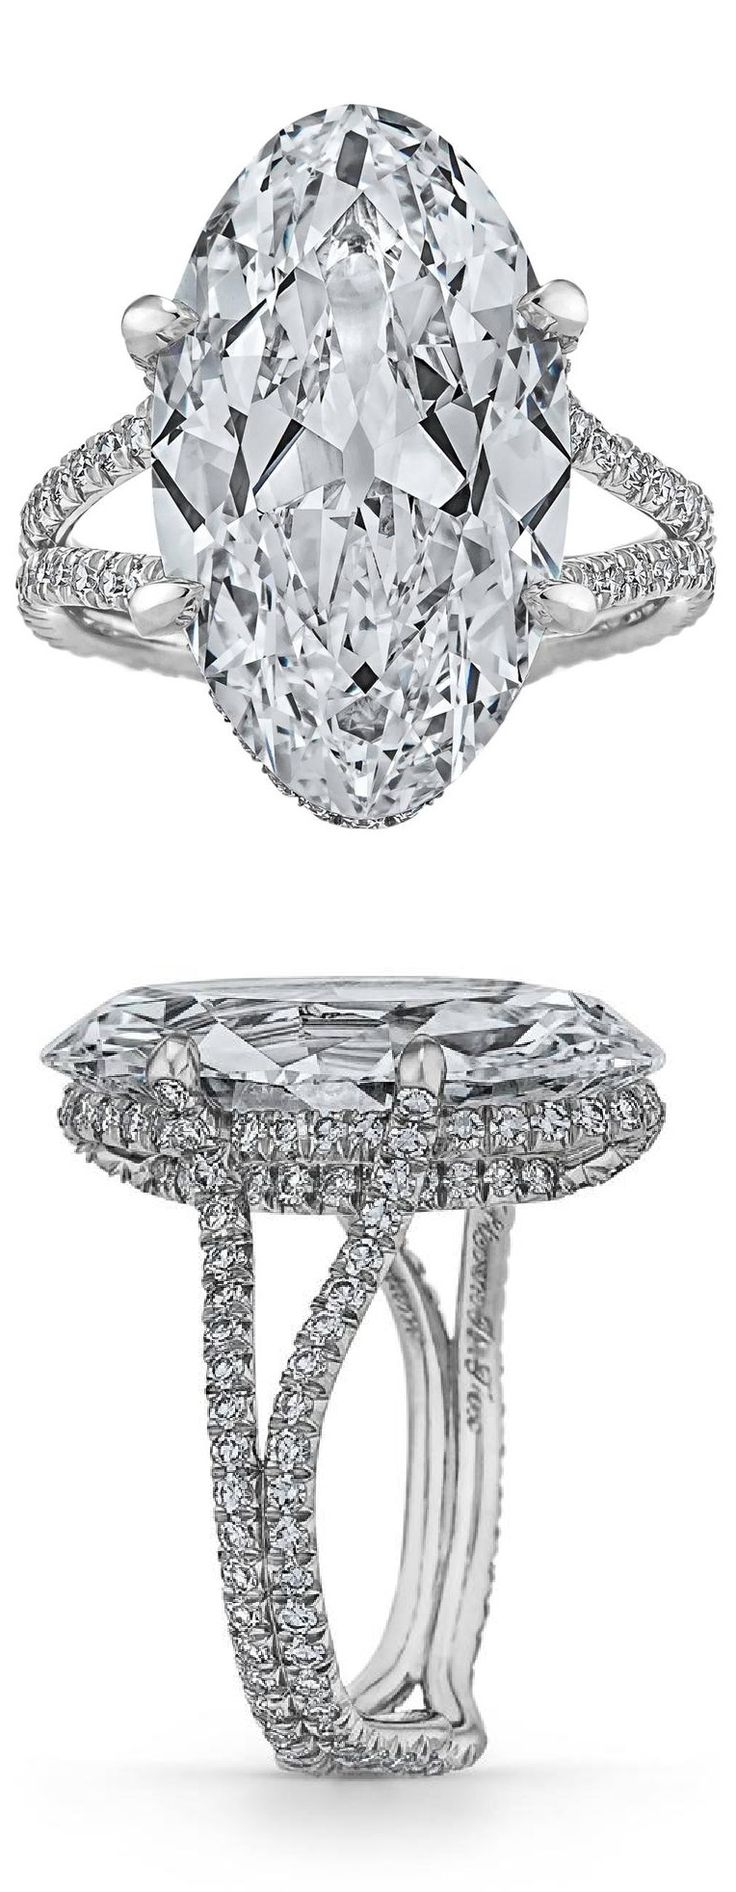 An Art Deco platinum and diamond ring, 1930s. Featuring an oval diamond weighing 9.83 carats. #ArtDeco #ring